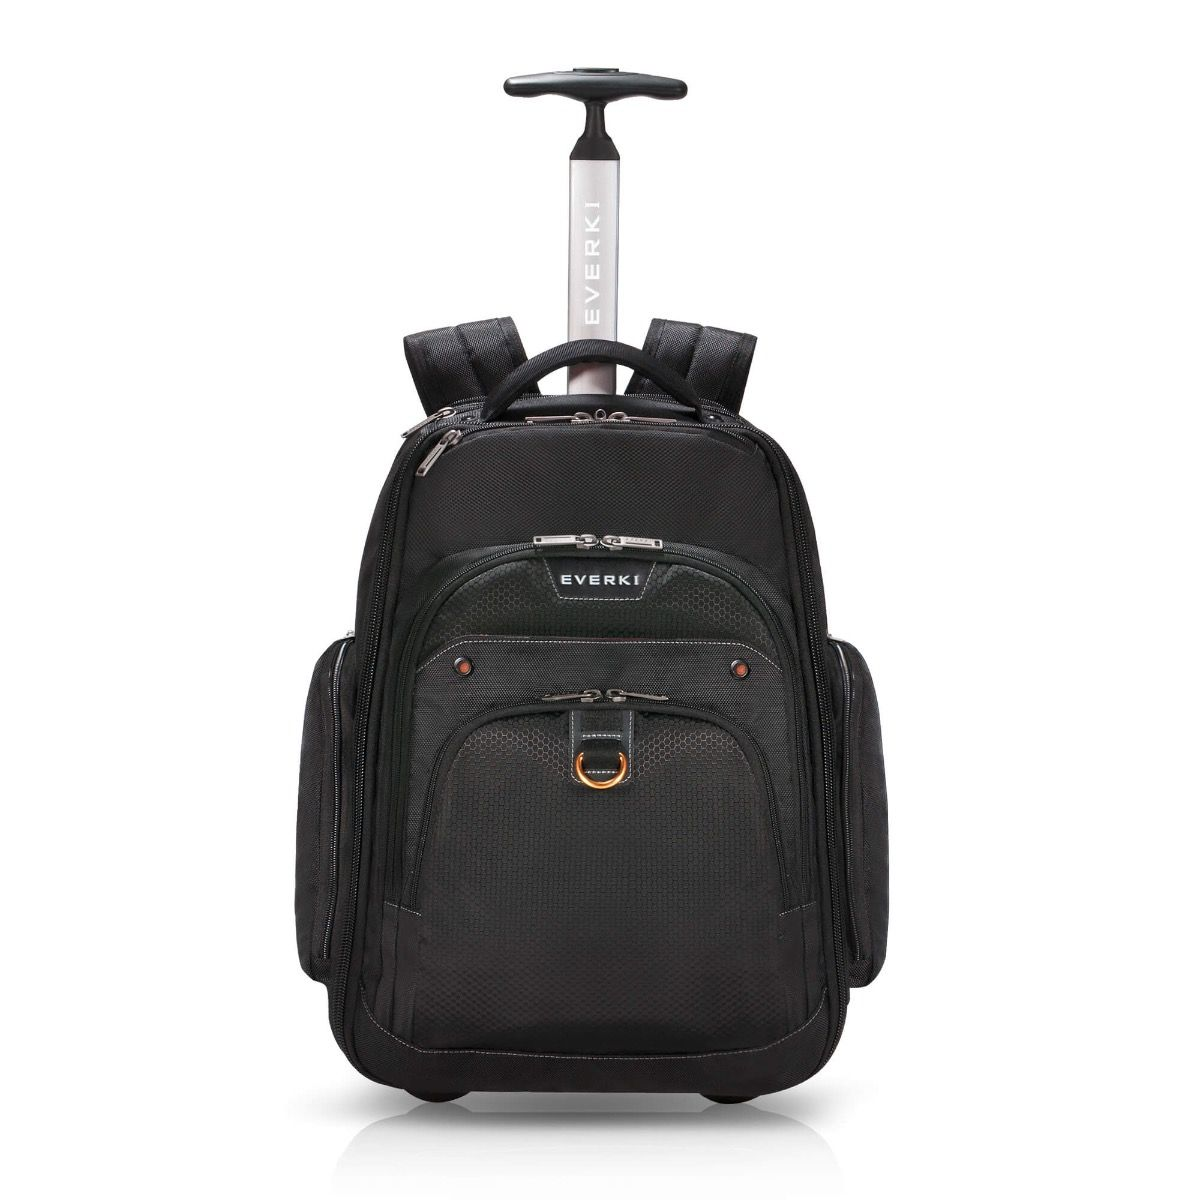 EVERKI Atlas 17 Inch Wheeled Laptop Backpack